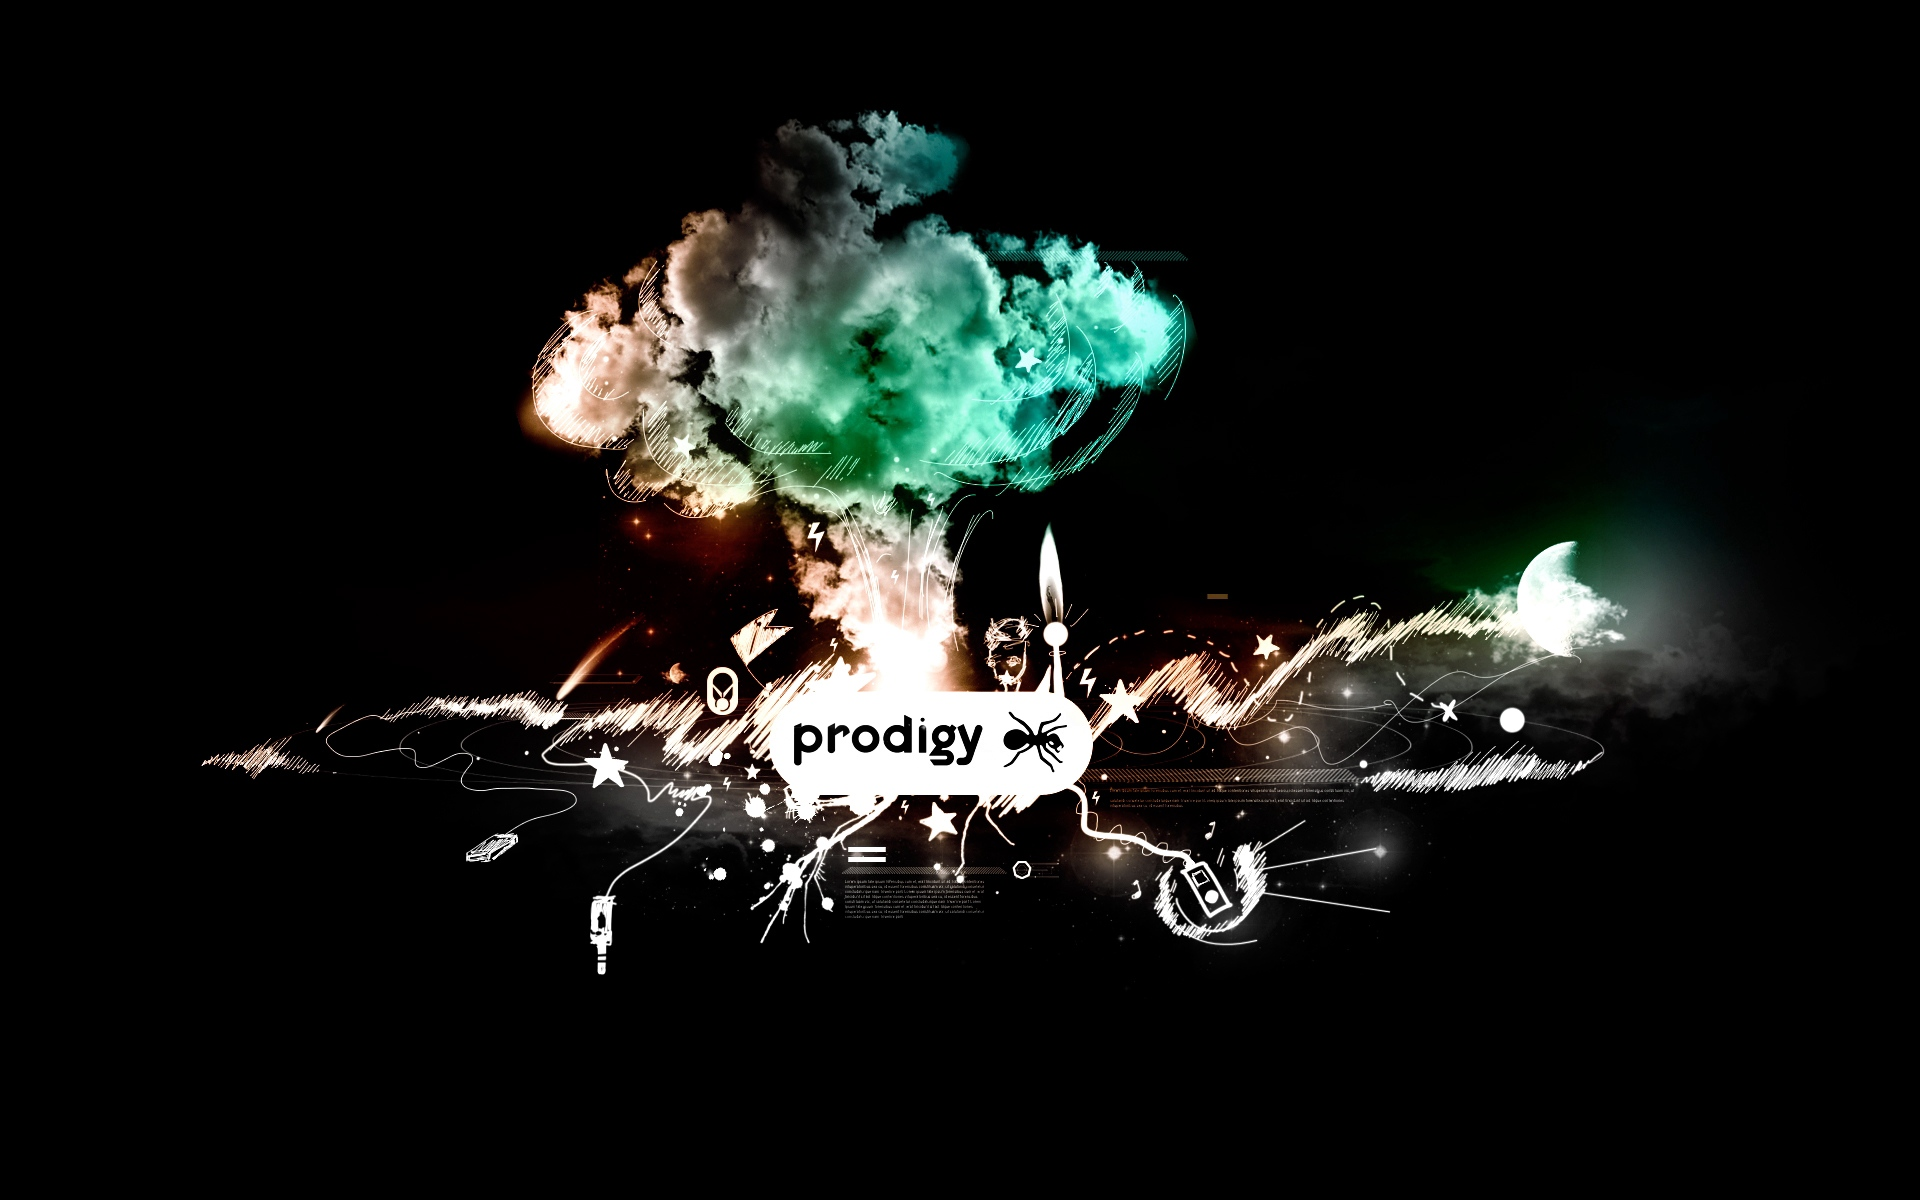 1920x1200 - Prodigy Wallpapers 23